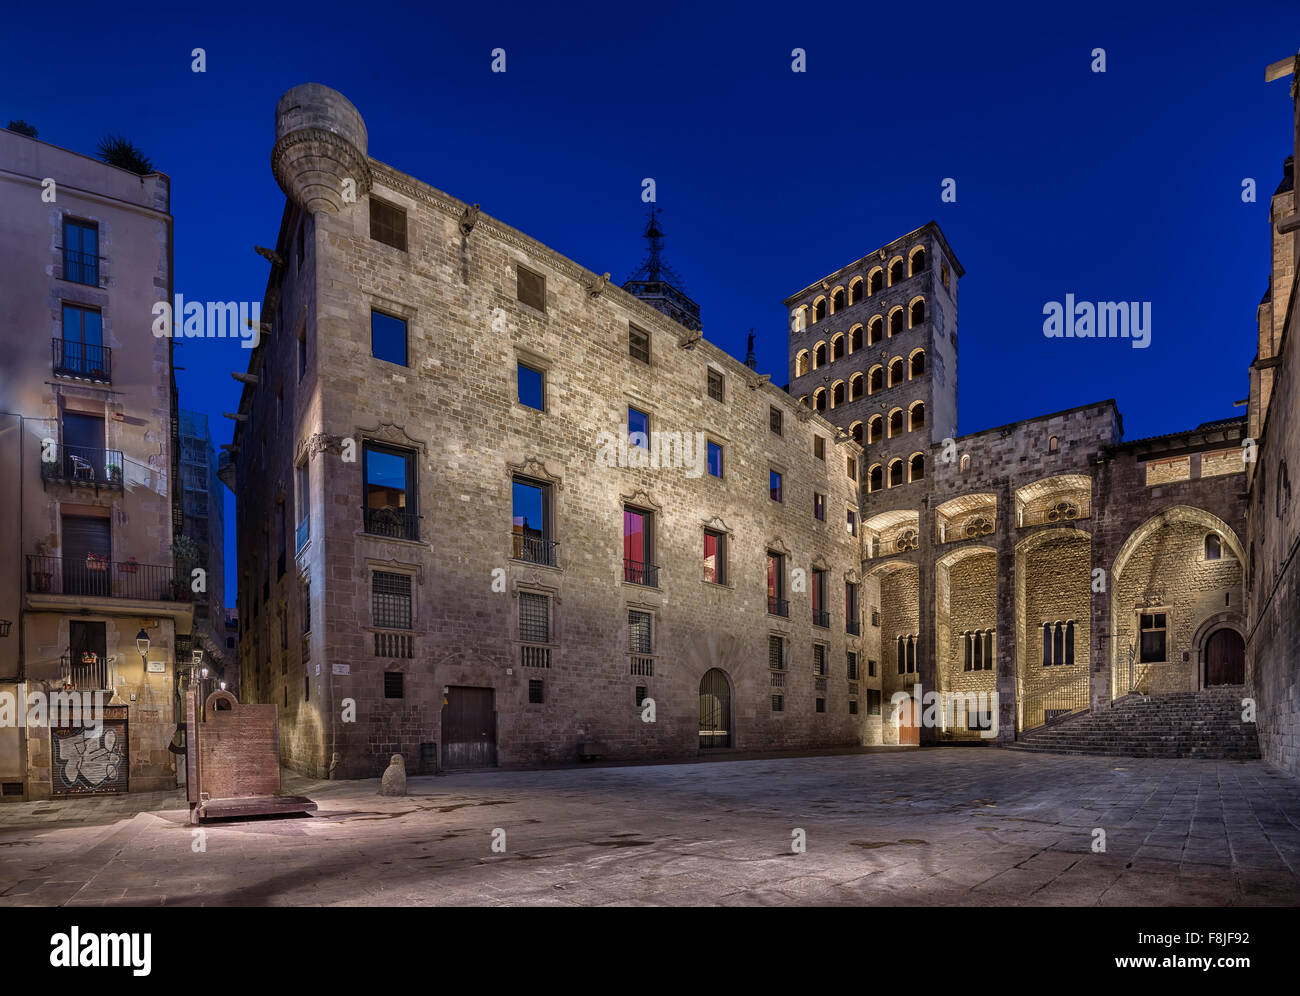 Illuminated Kings square at night, Placa del Rei, Barri Gotic, Barcelona, Catalonia, Spain - Stock Image